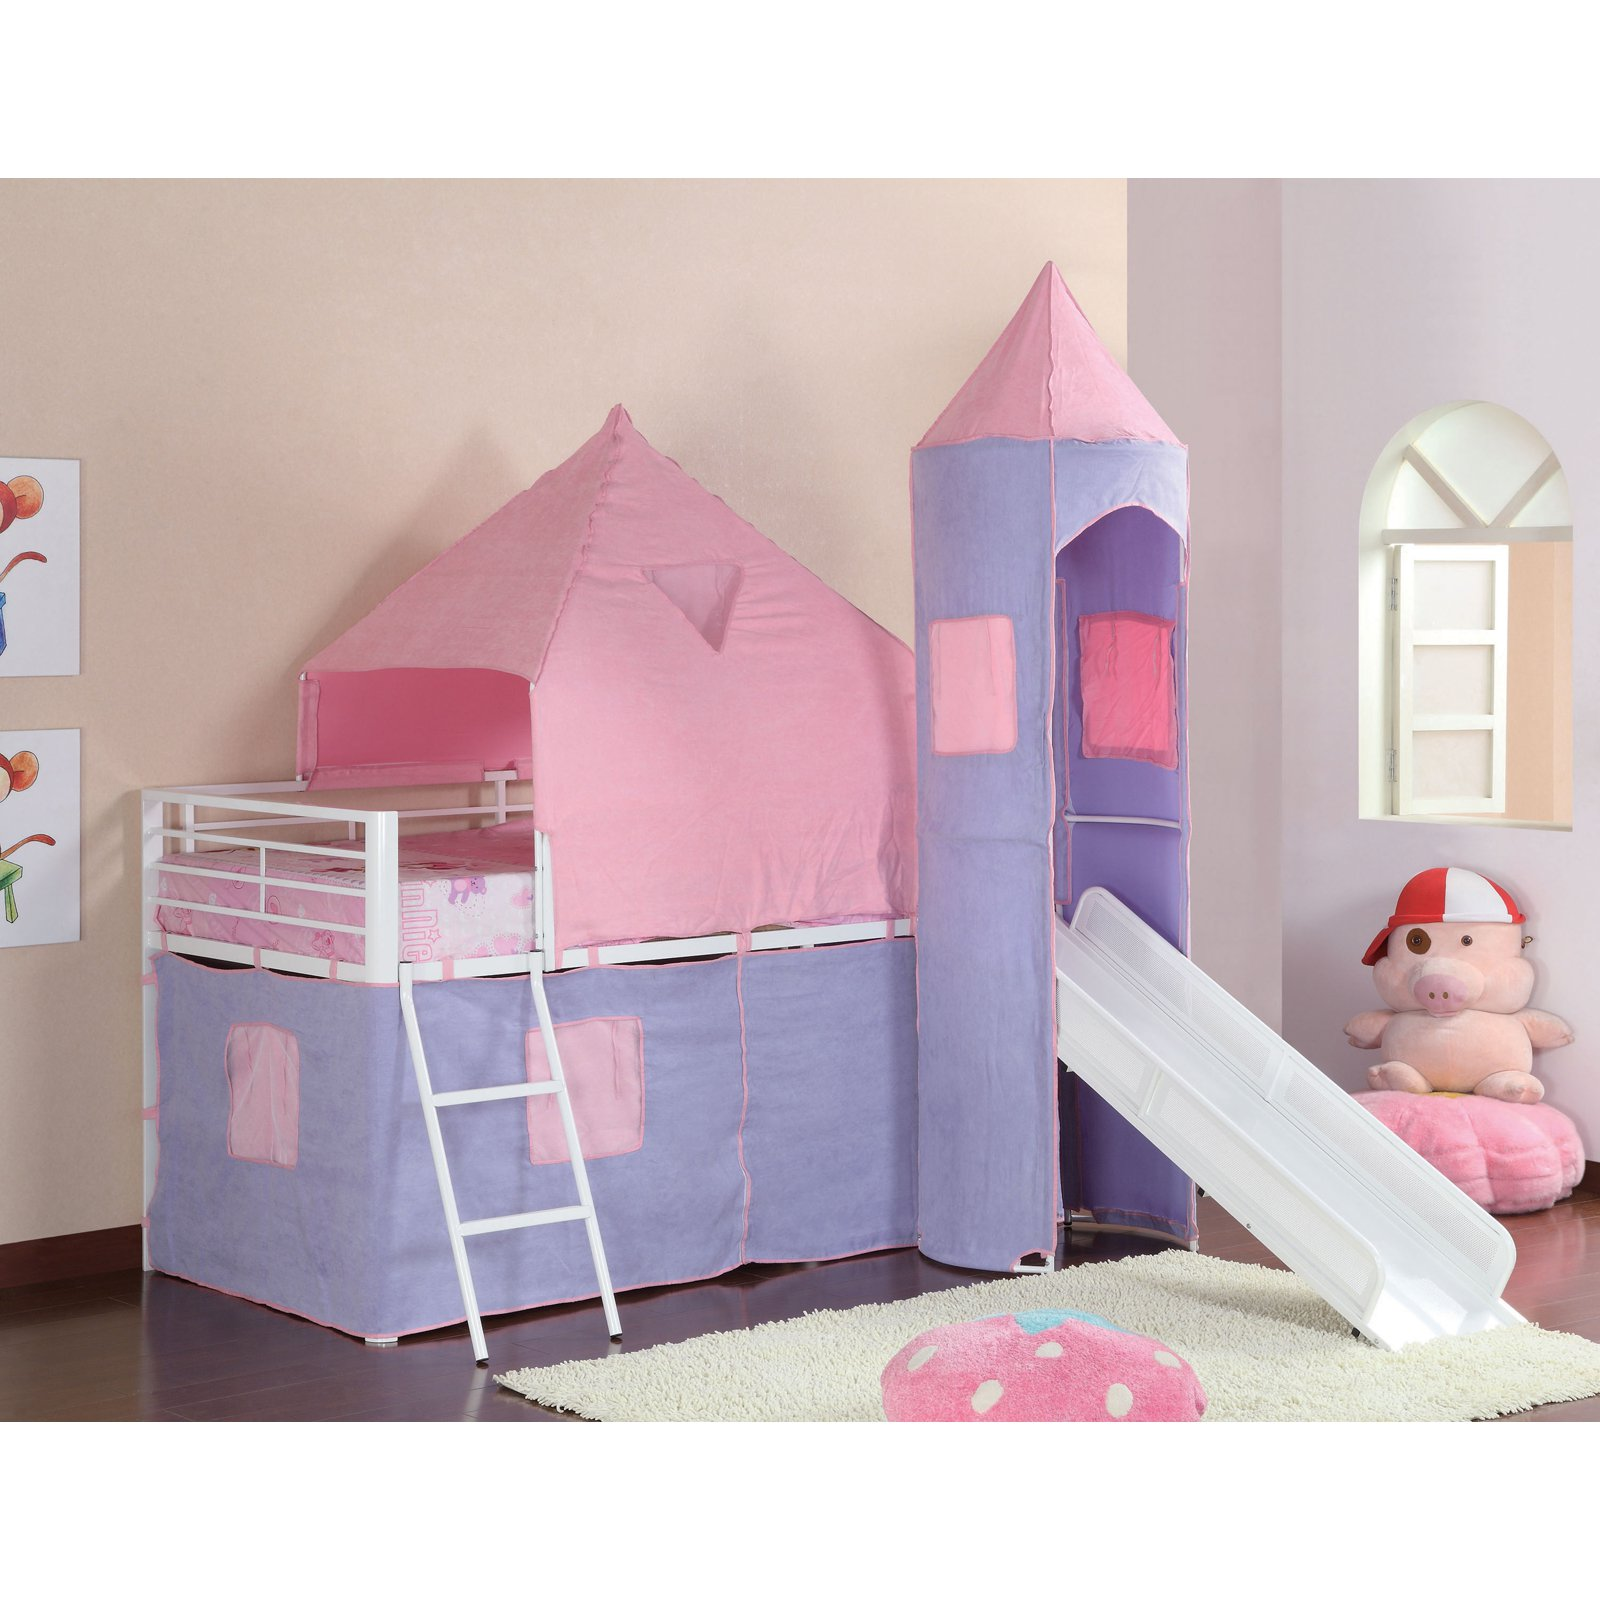 Coaster Princess Castle Twin Loft Bed, Pink/Purple